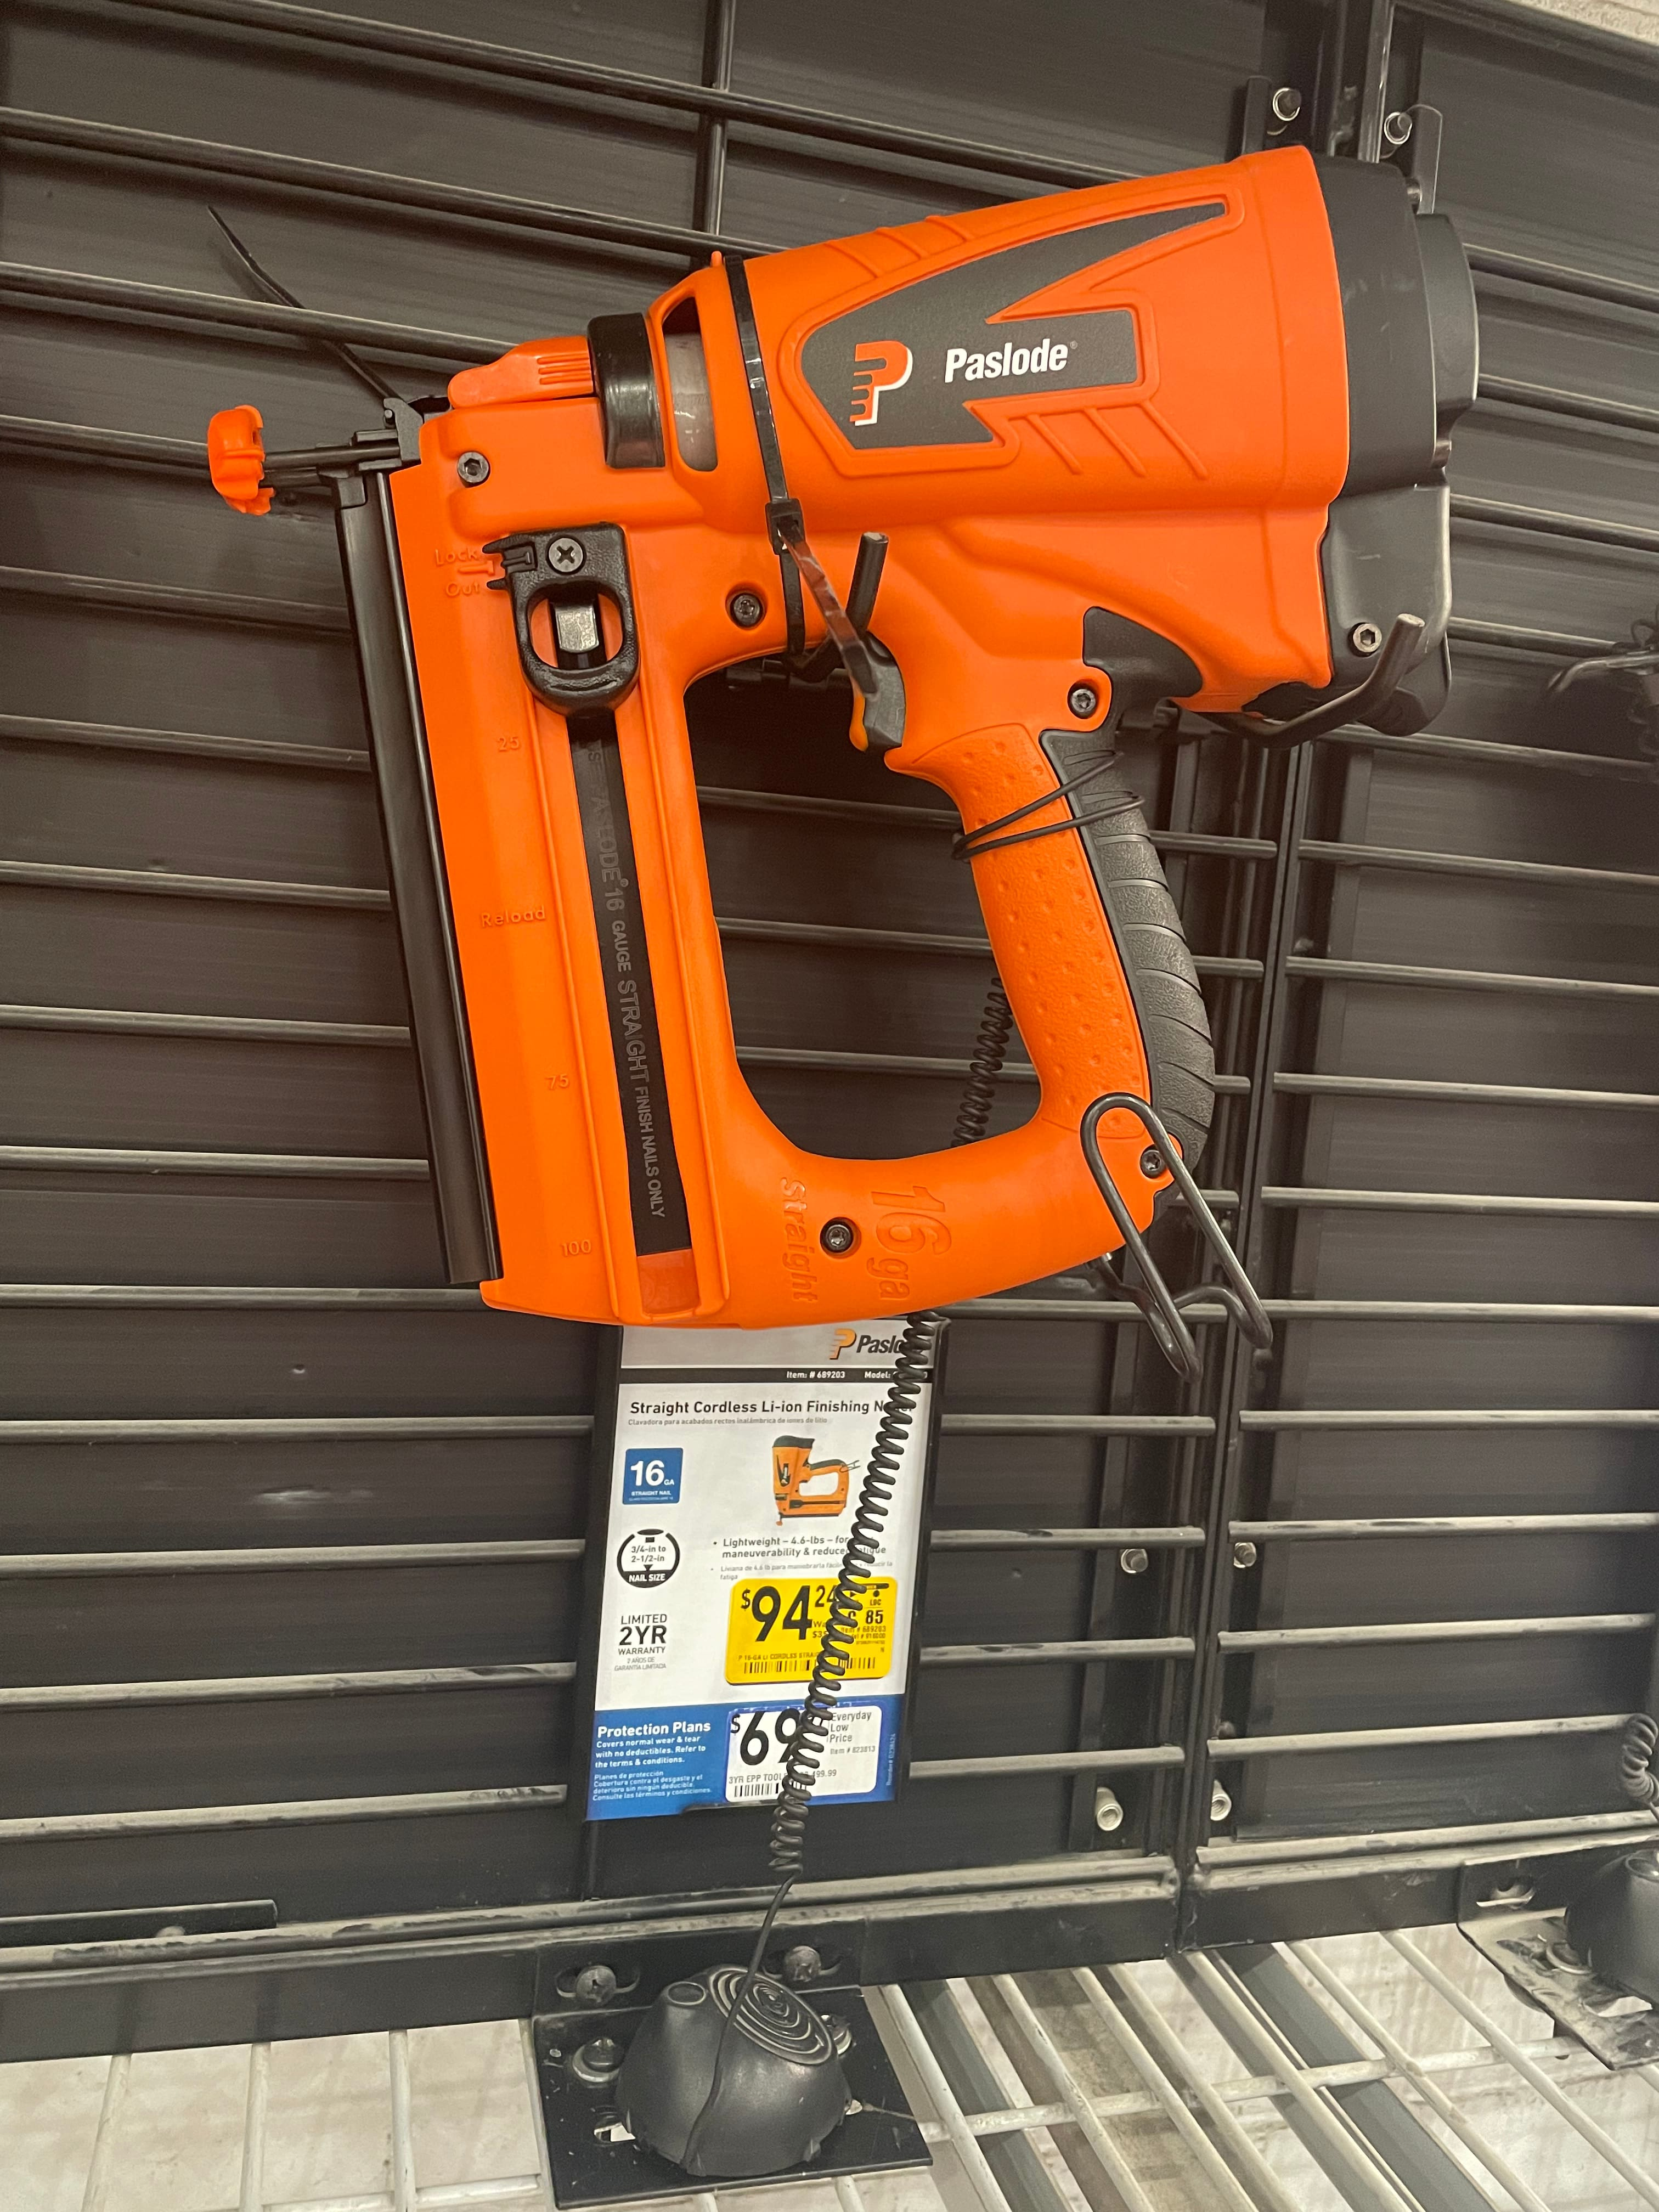 Paslode Straight 2.5-in 16-Gauge 7.5-Volt Cordless Finish Nailer @ Lowes. YMMV and in store only - $94.24